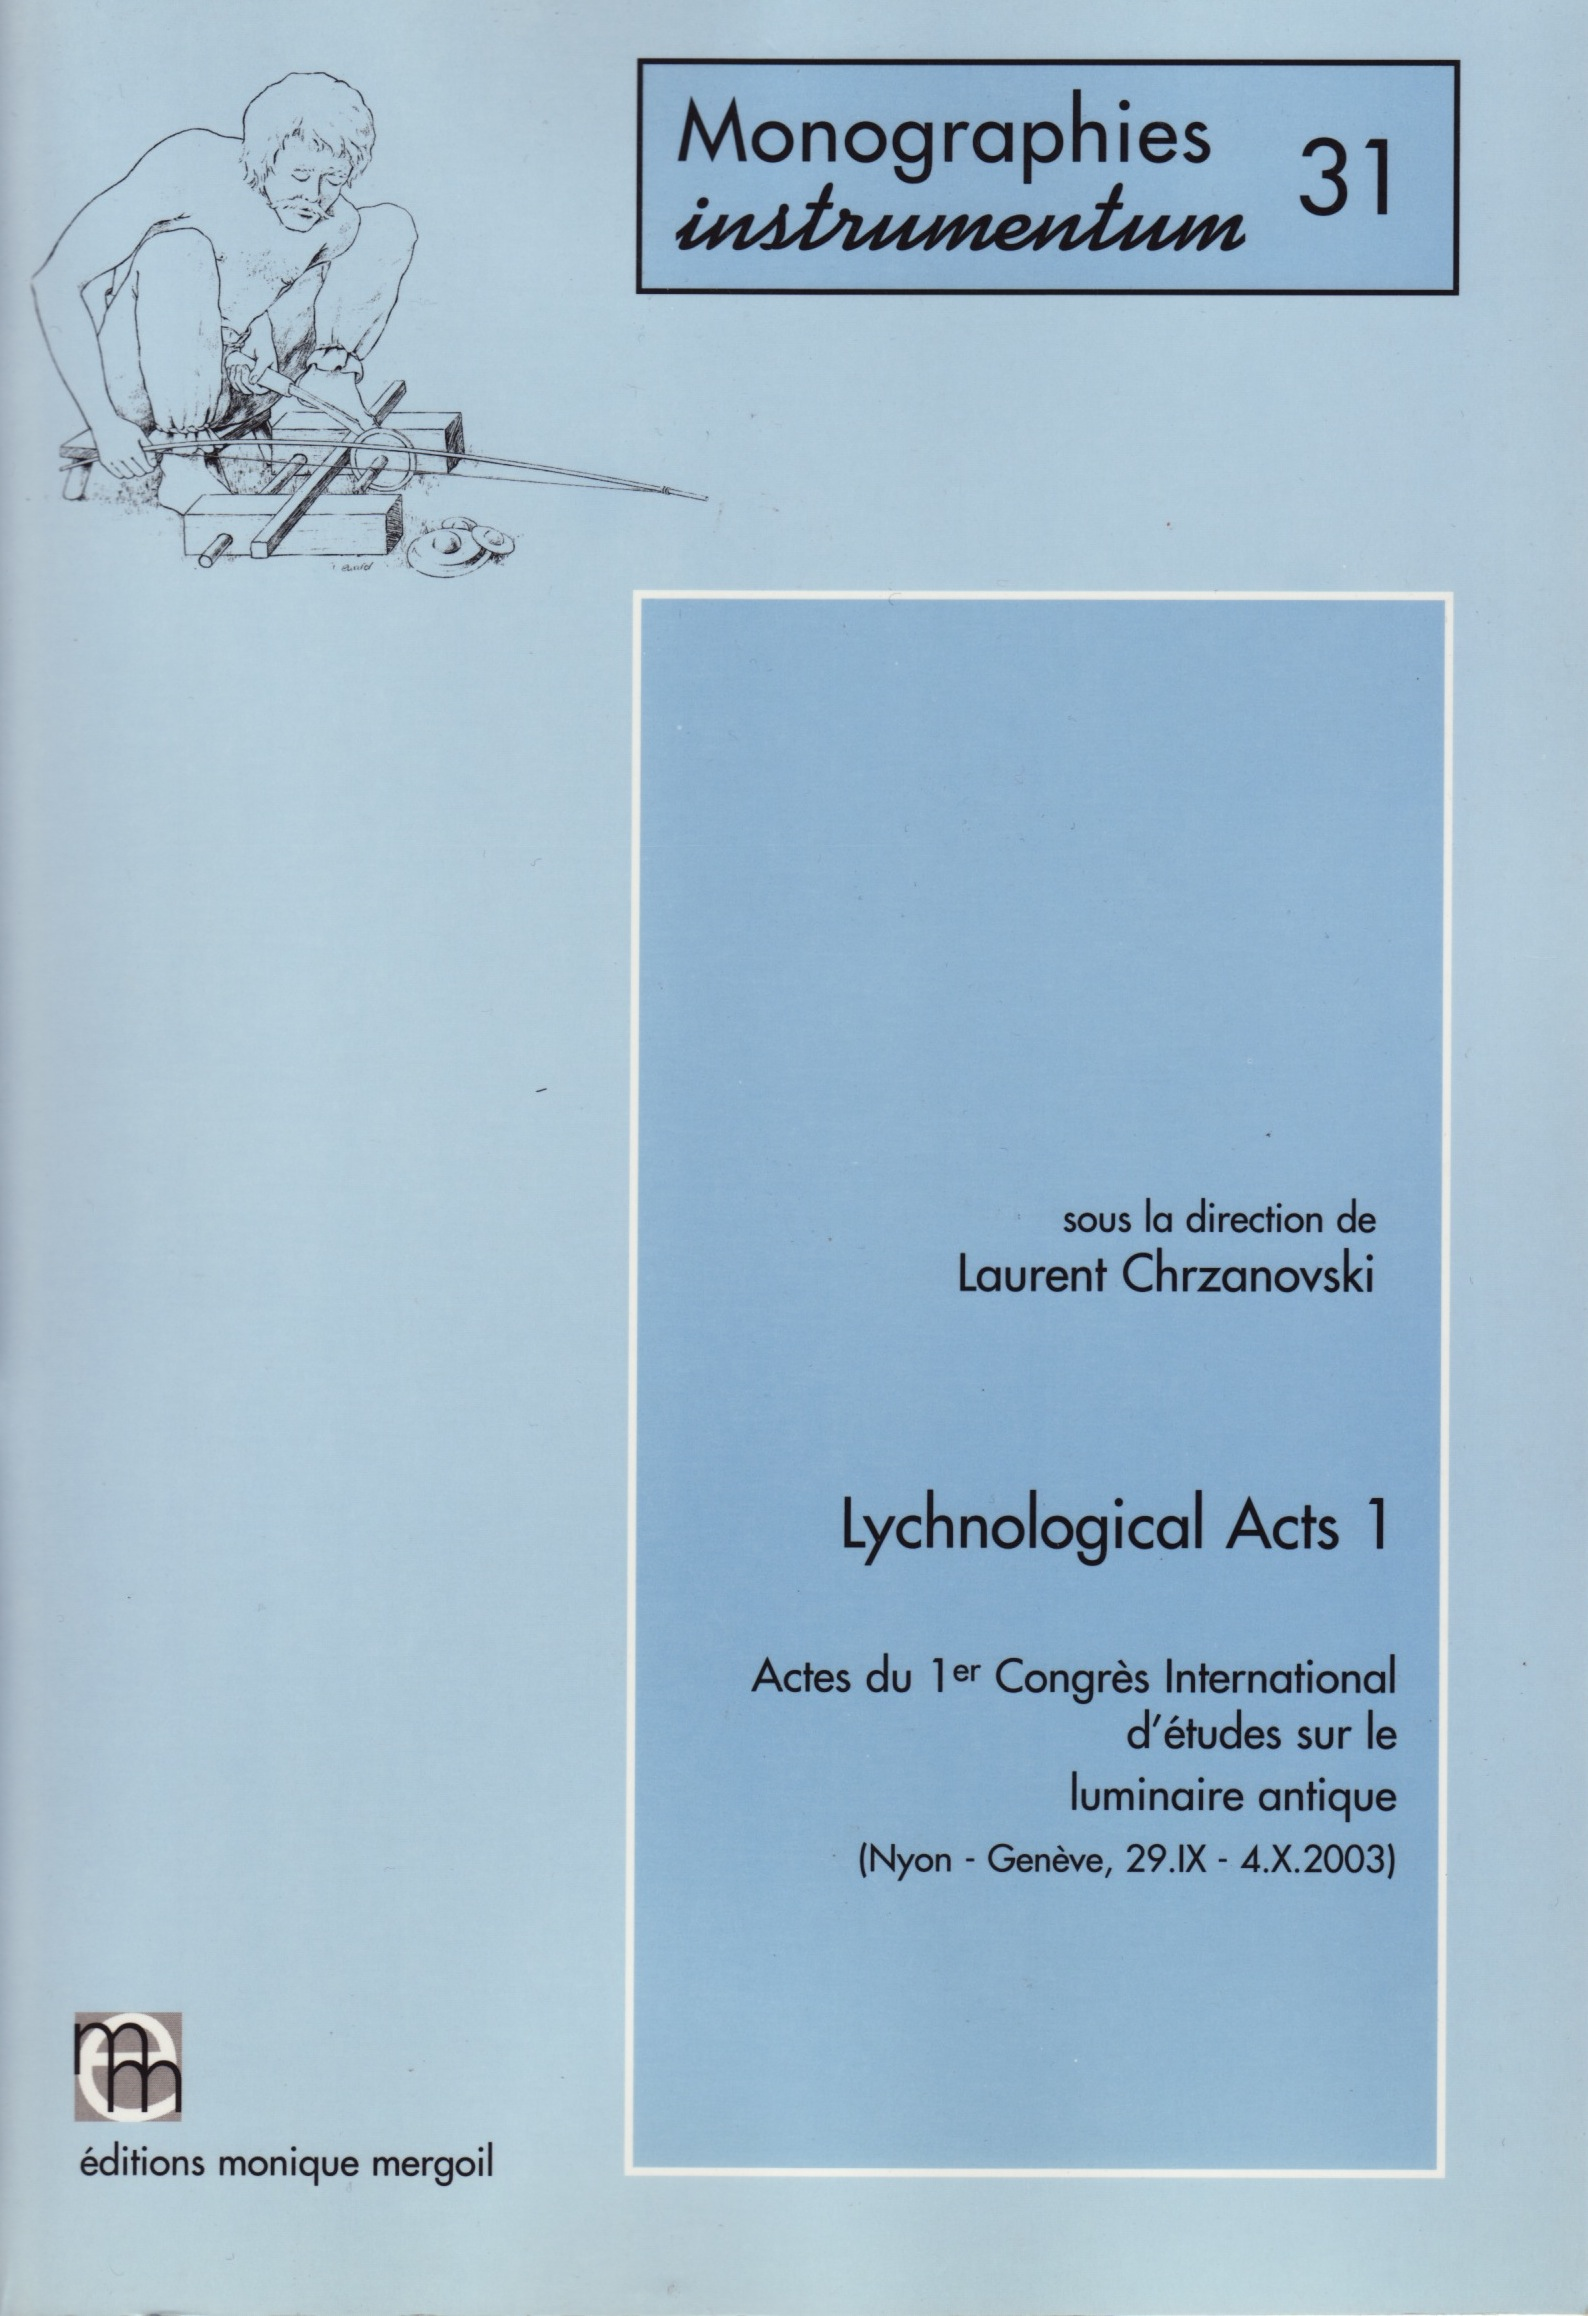 lychnological acts 1